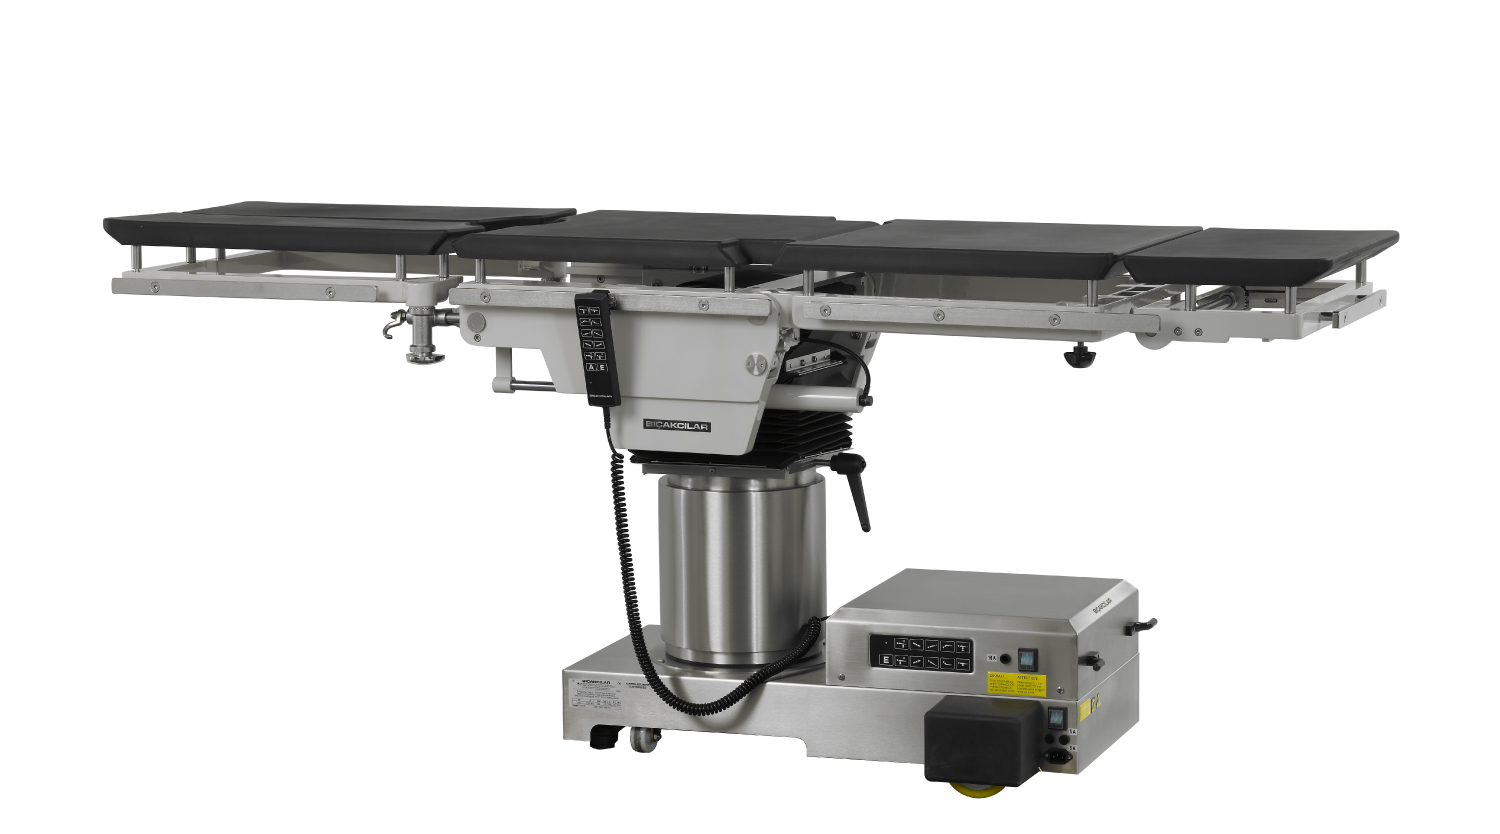 SURGILINE 2000R SURGICAL TABLE